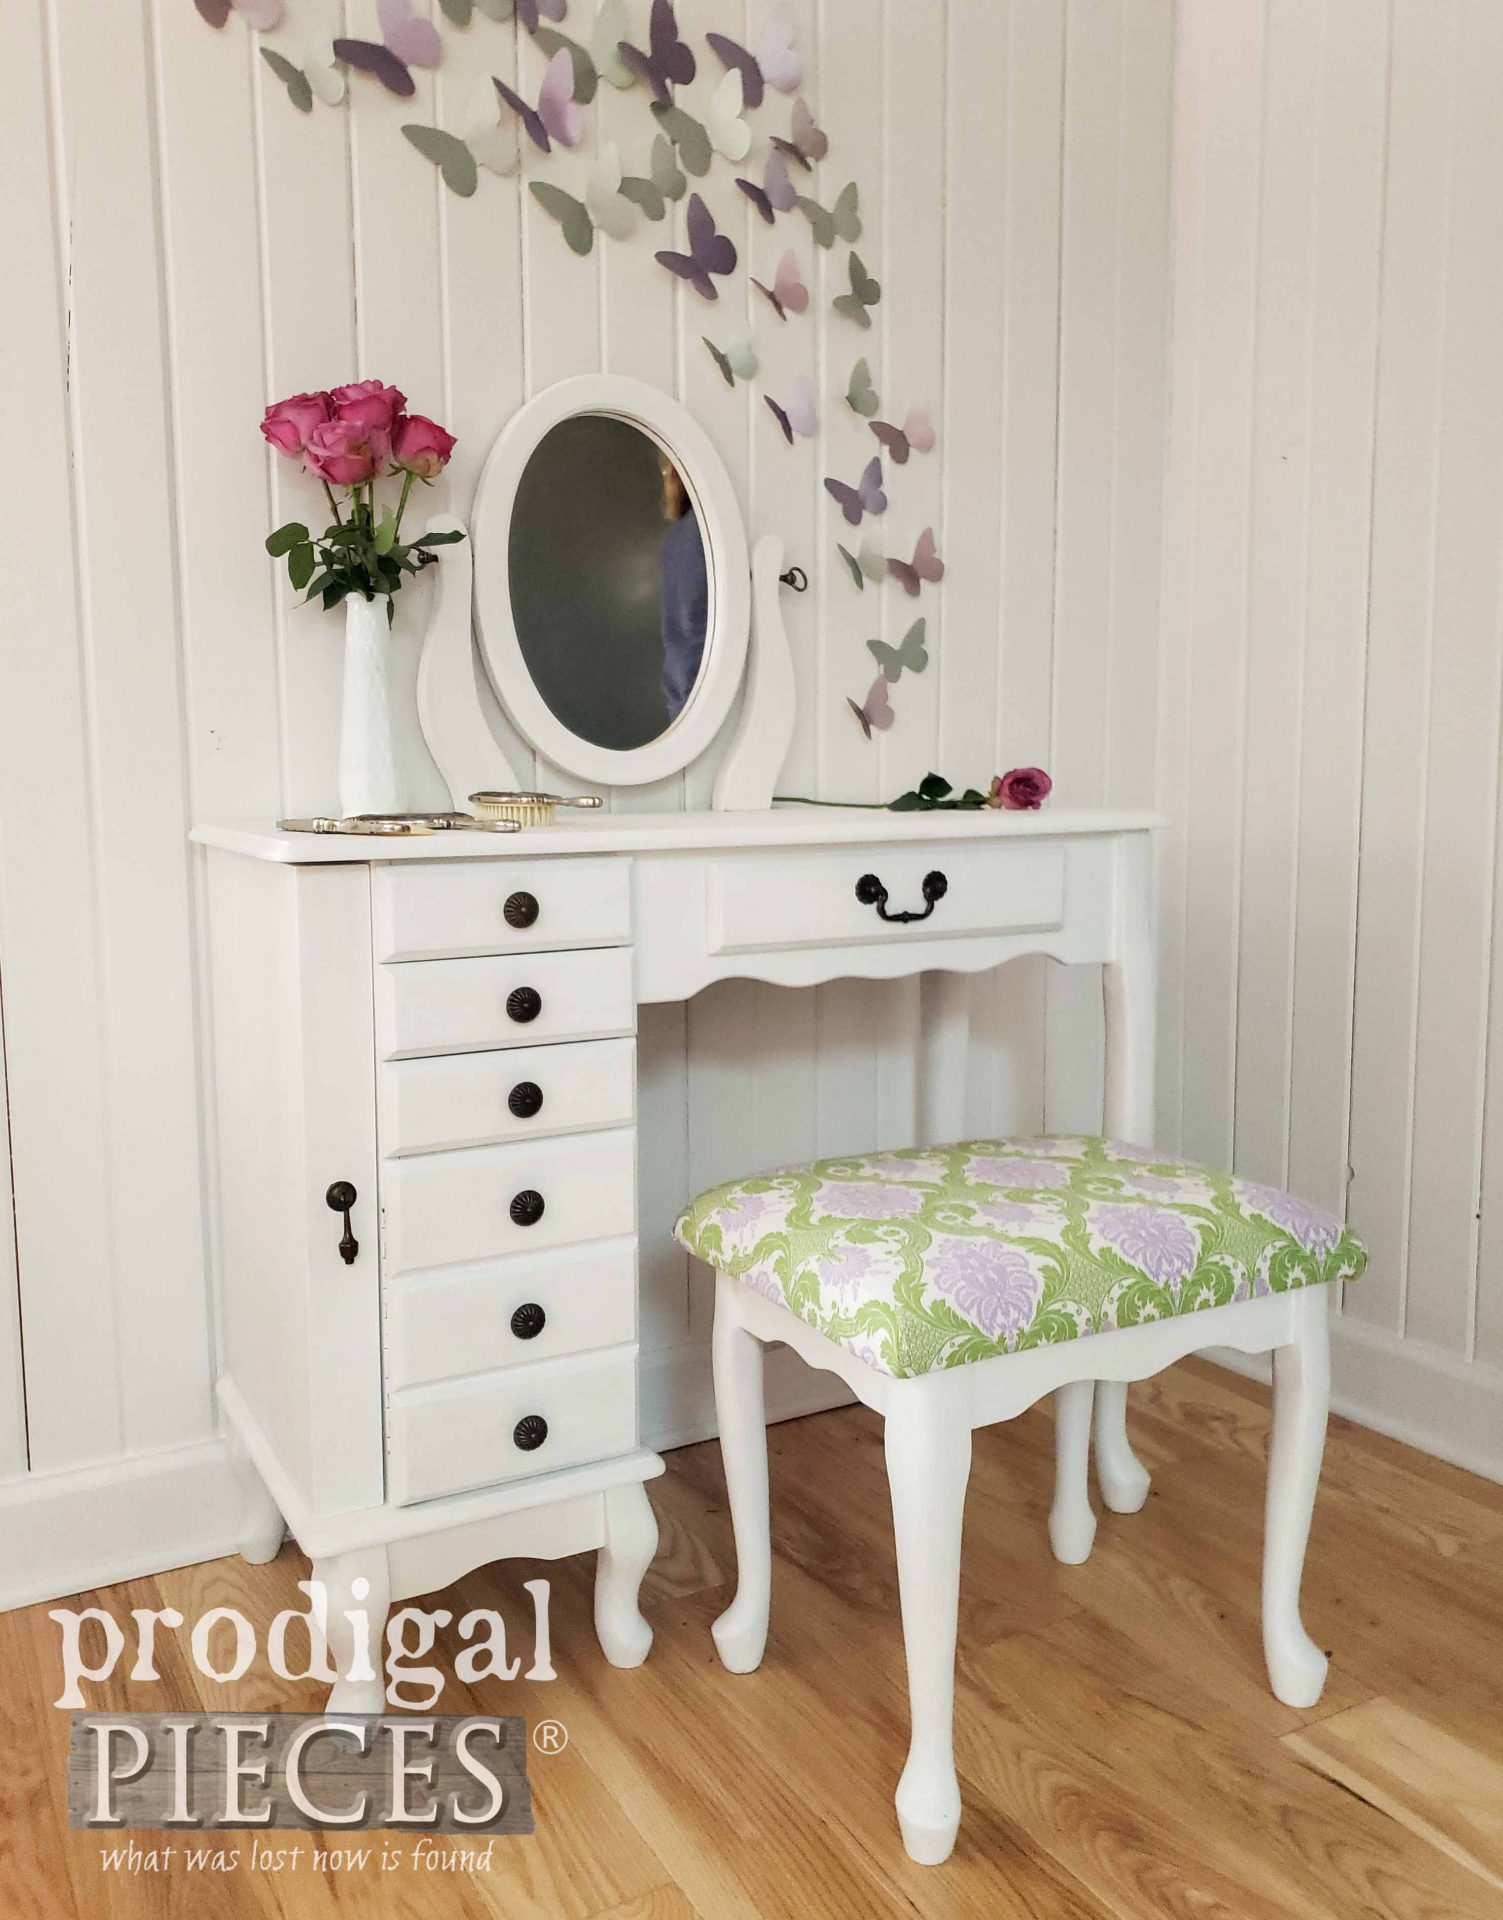 Absolutely beautiful vintage girls vanity table refinished in white with new upholstery by Prodigal Pieces | prodigalpieces.com #prodigalpieces #diy #home #homedecor #vintage #girls